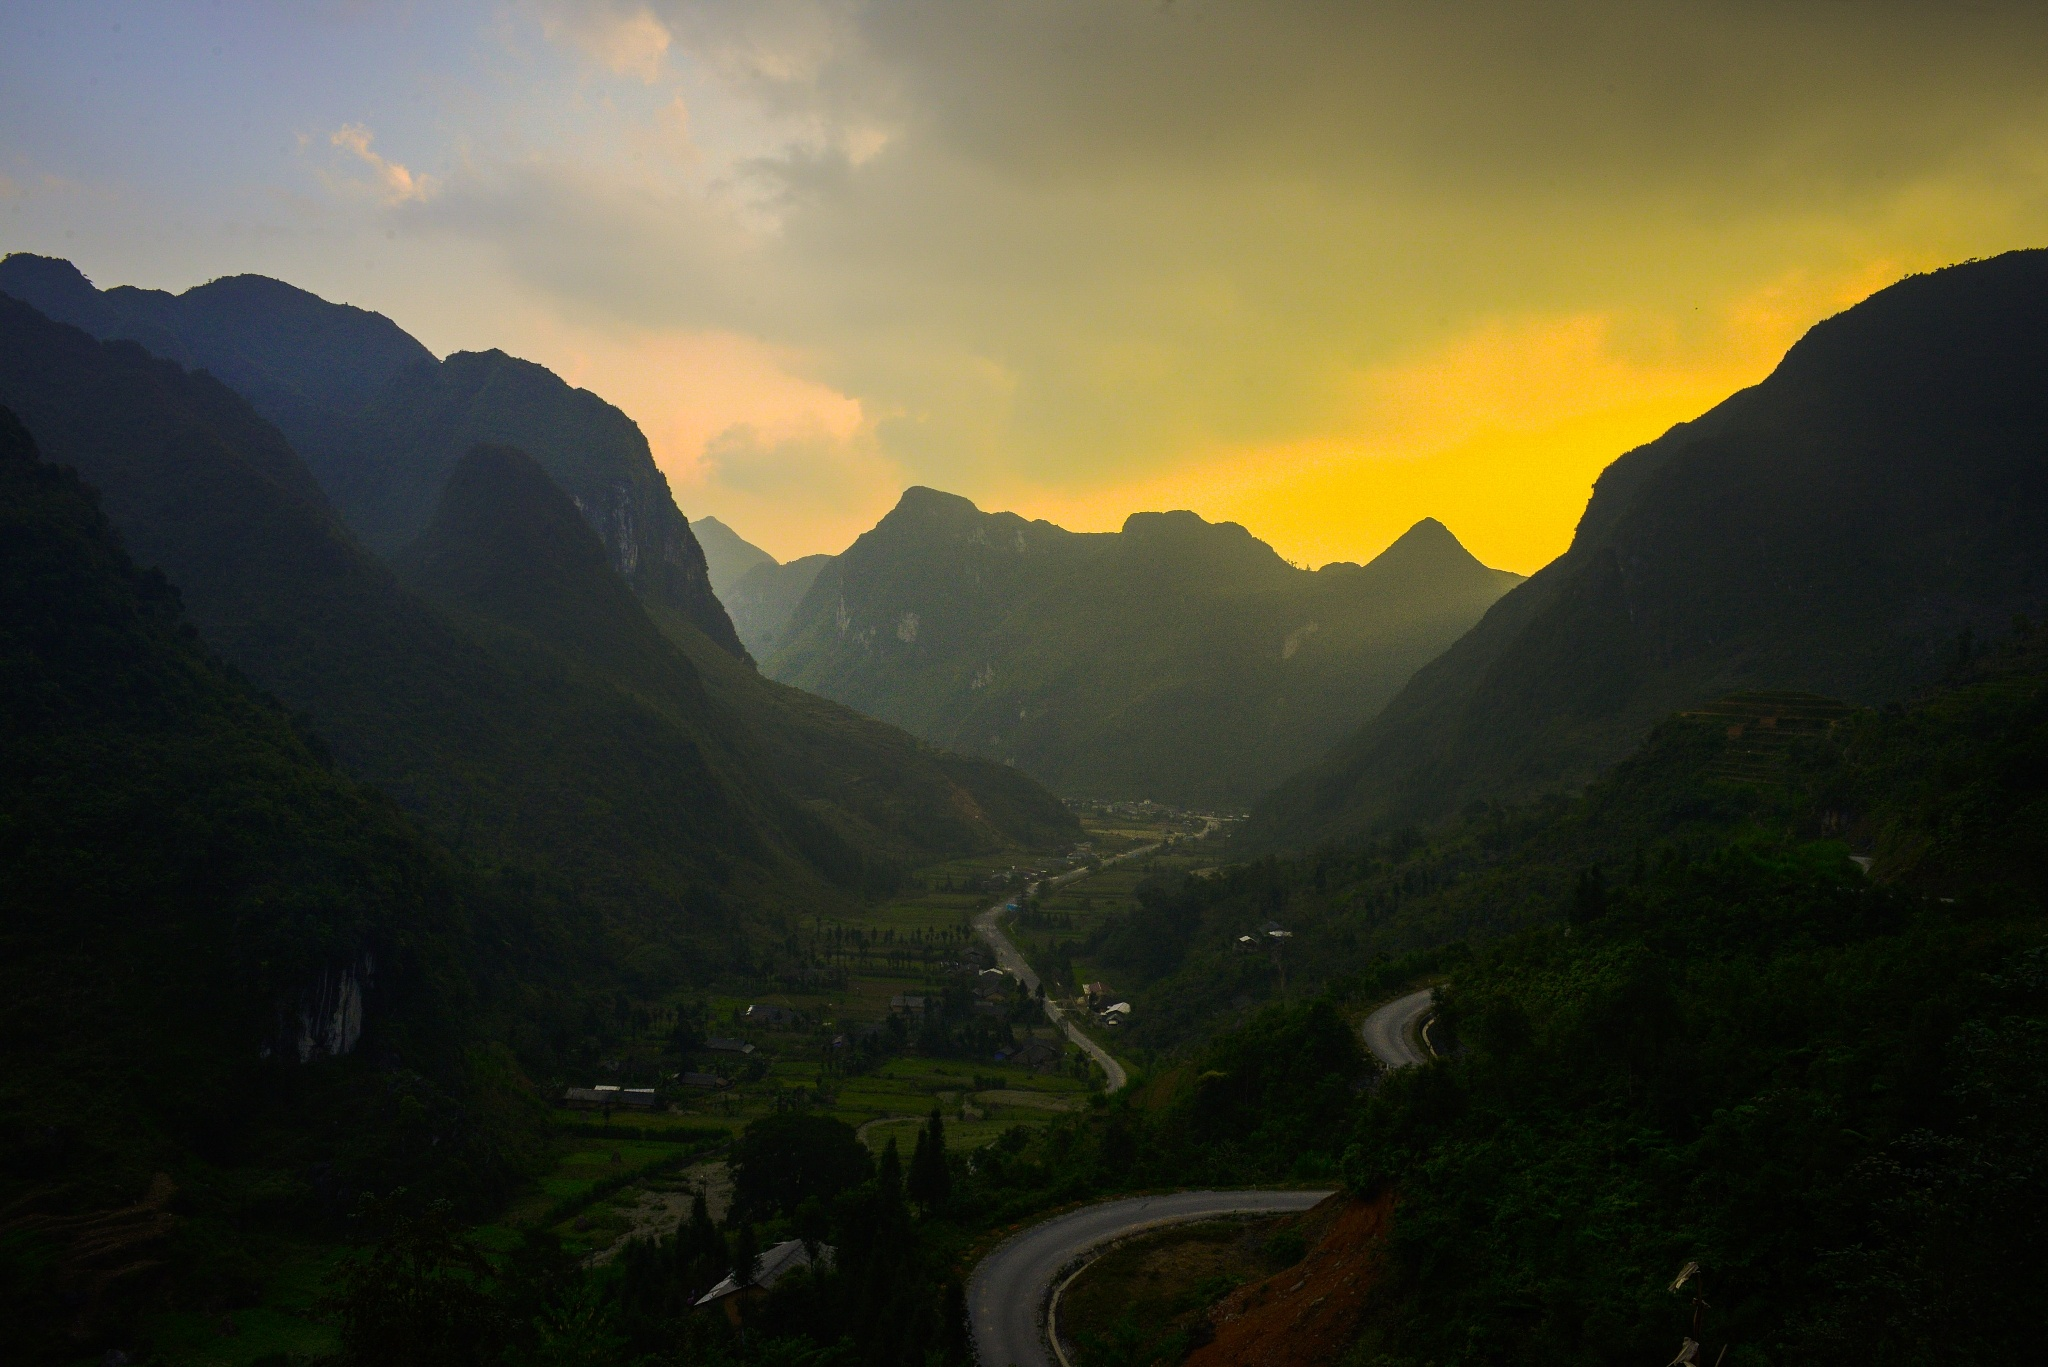 Sunset over a valley by Cuong NM